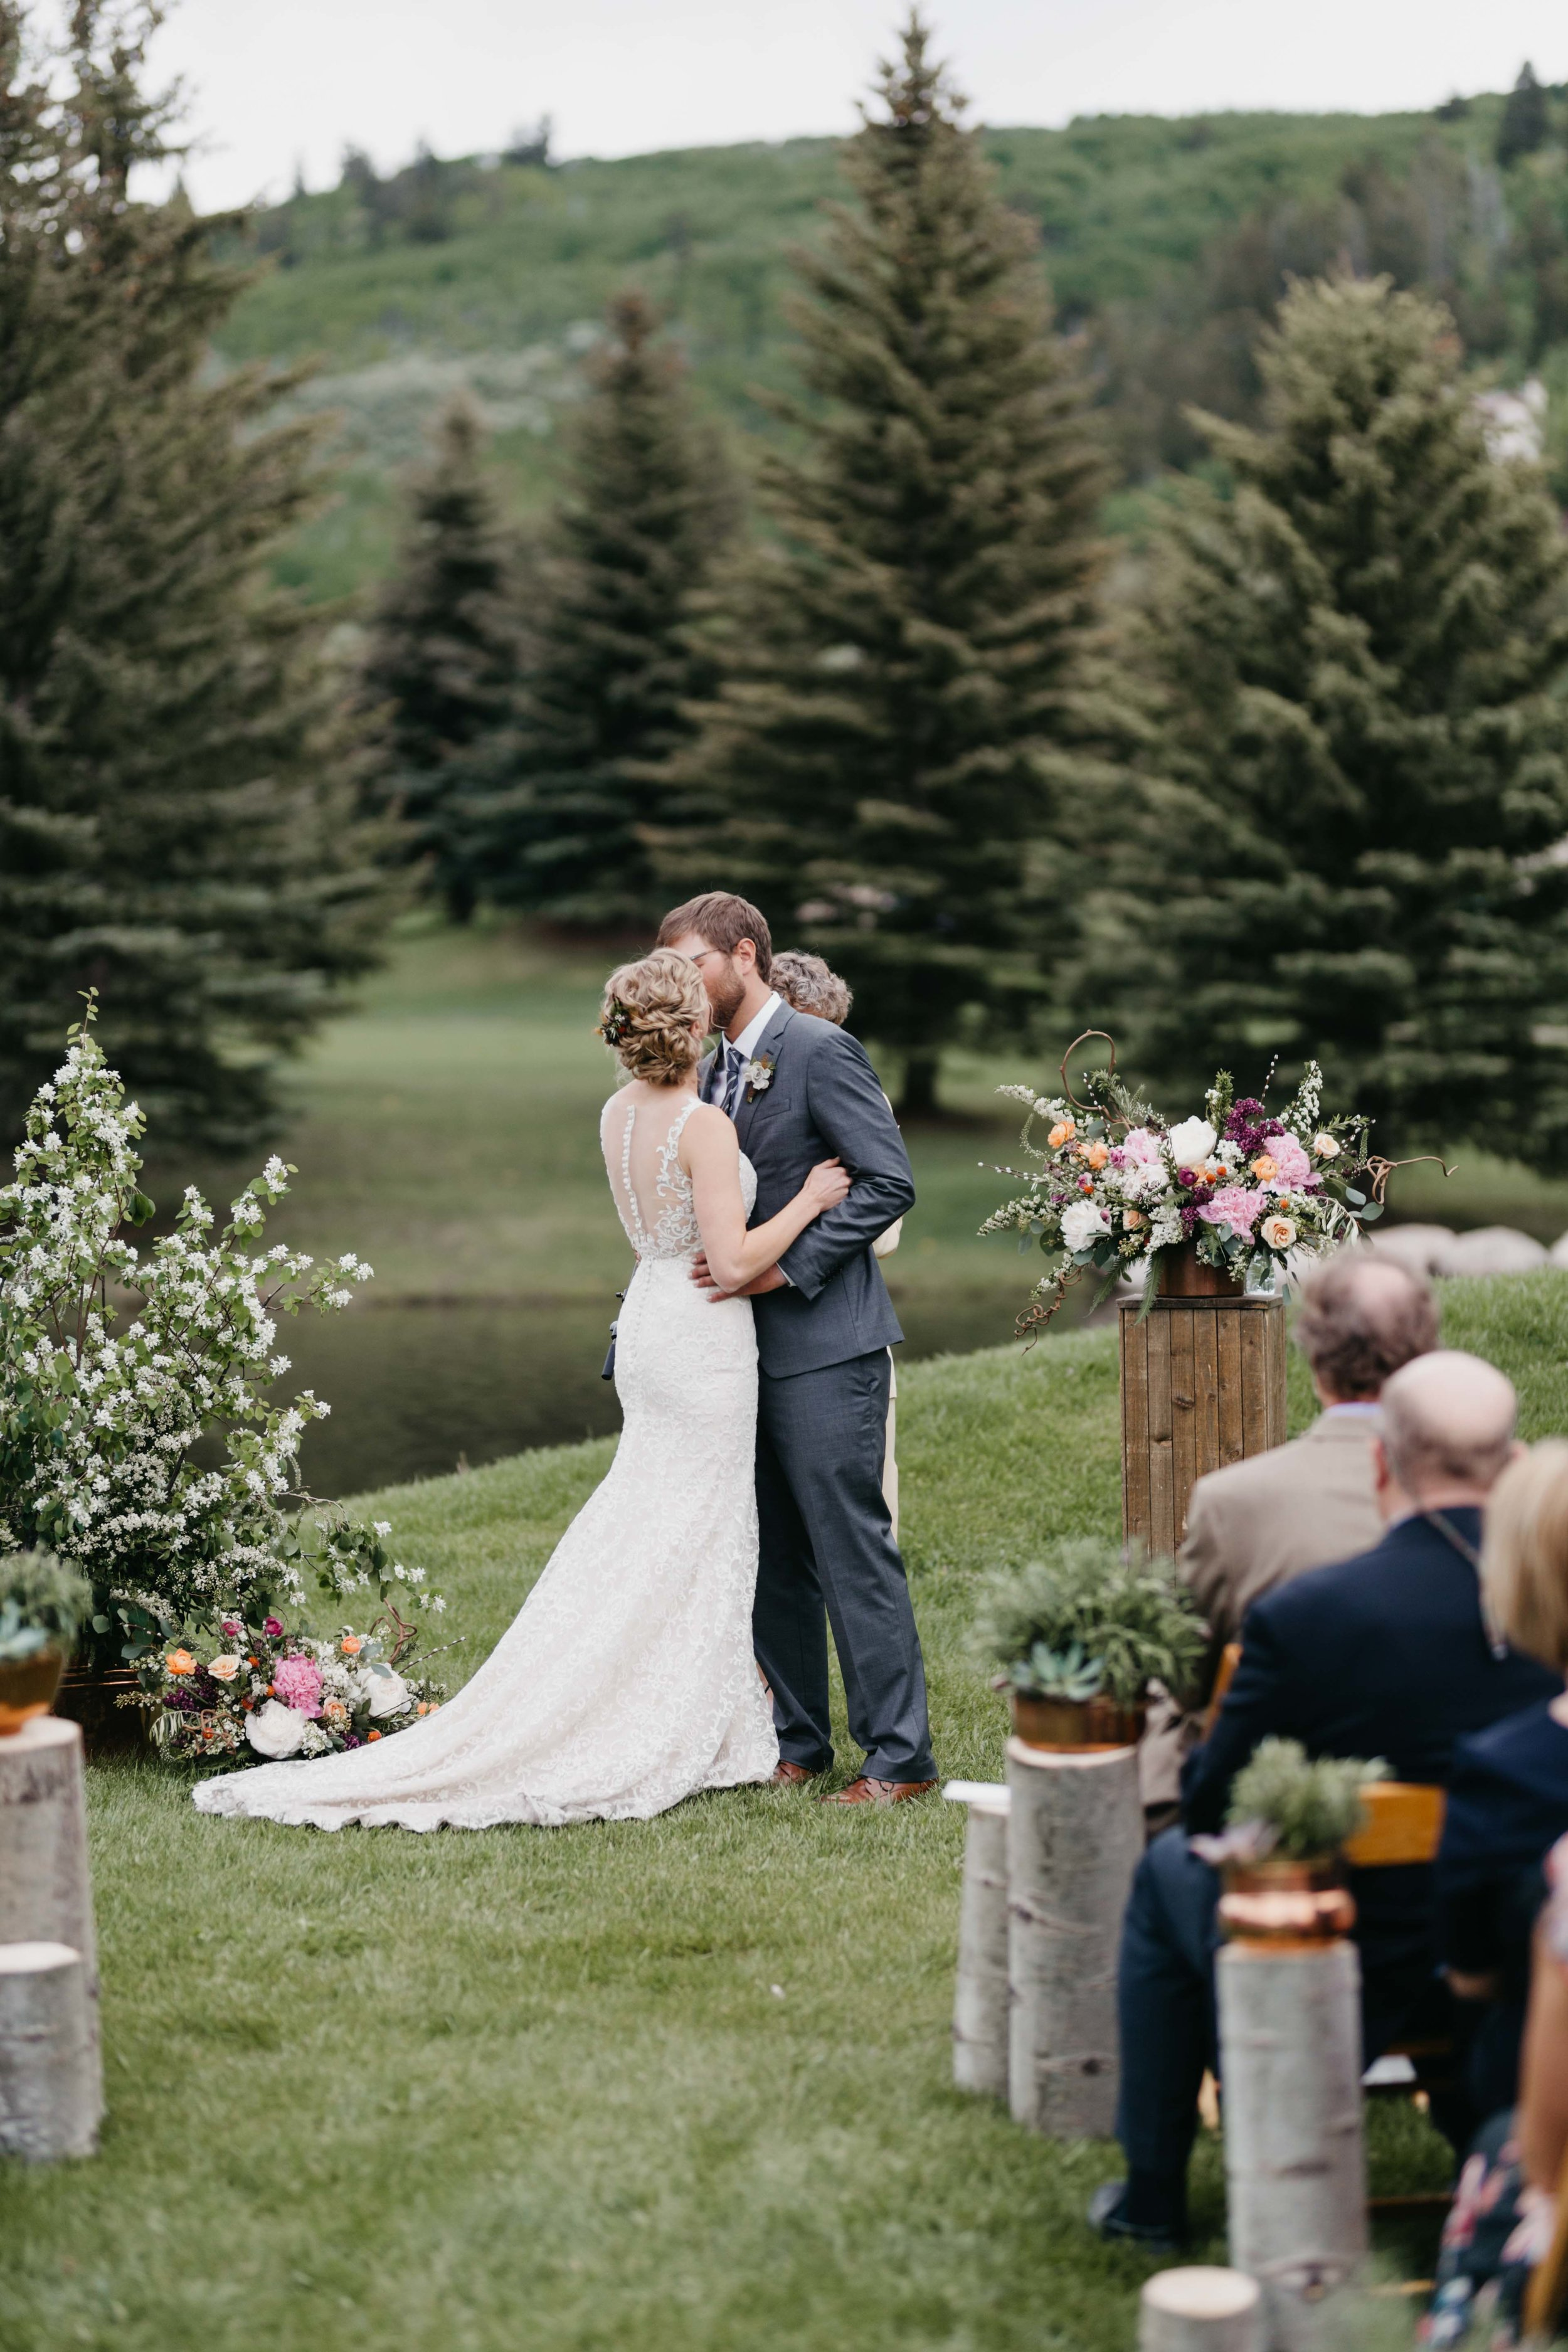 Colorado-Wedding-Photographer-64.jpg